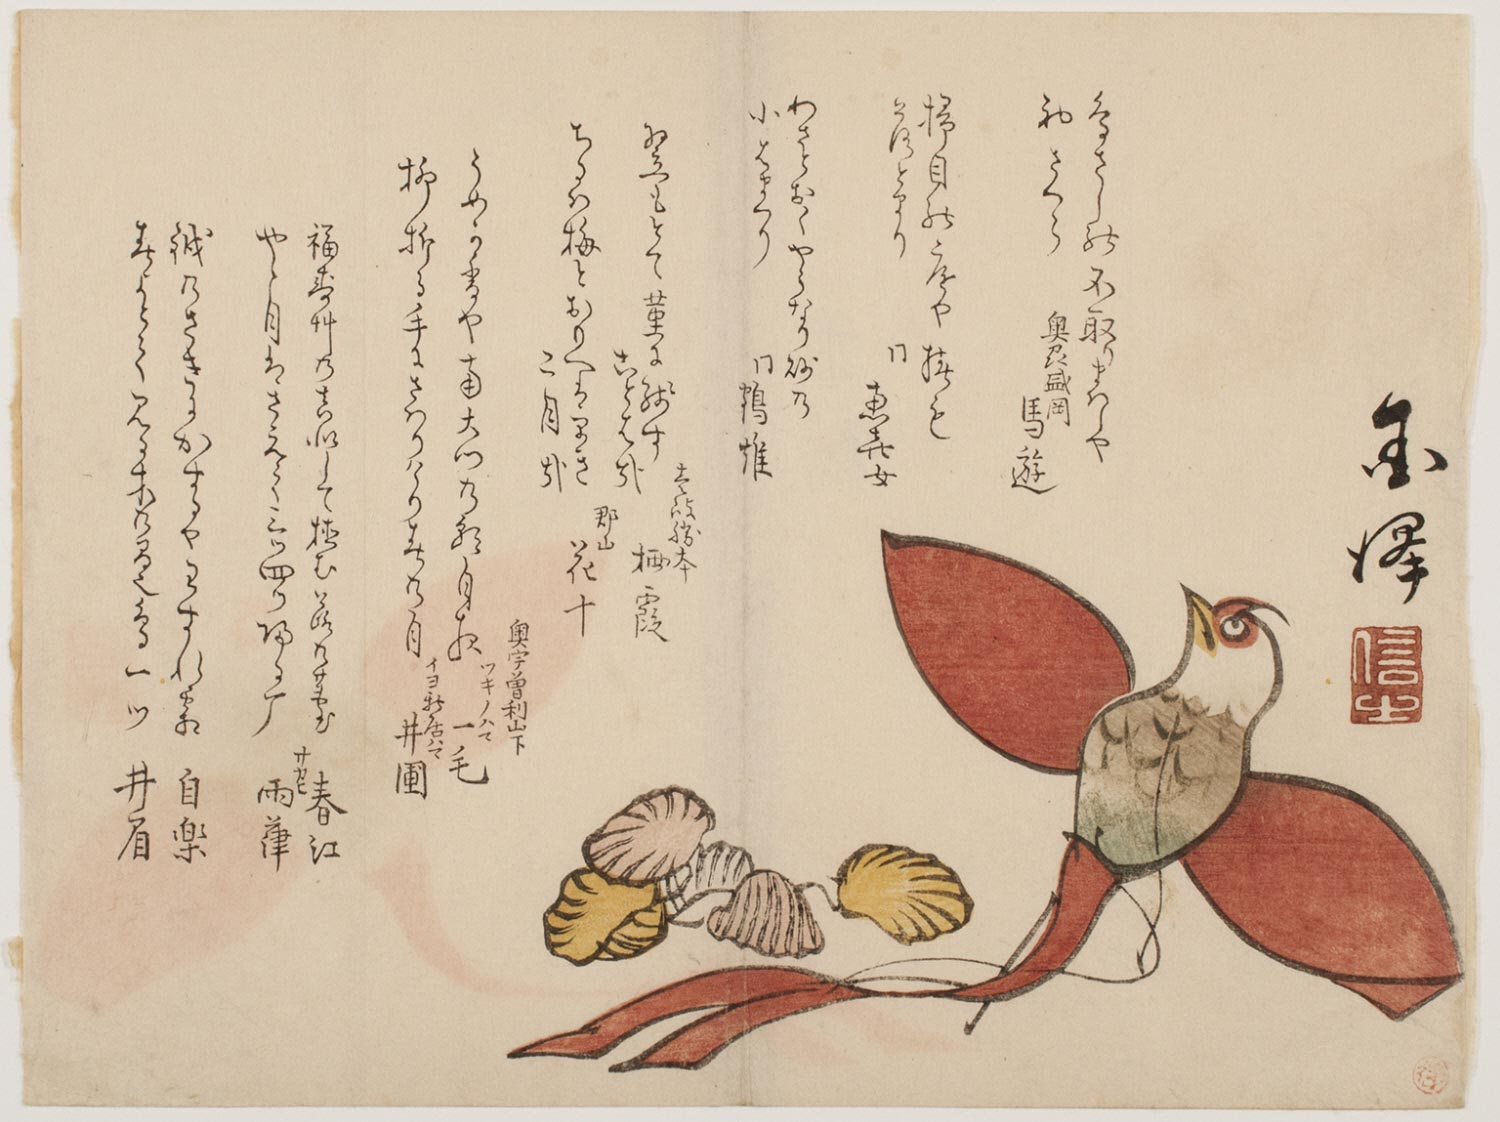 Bird Kite and Seashells with Poems